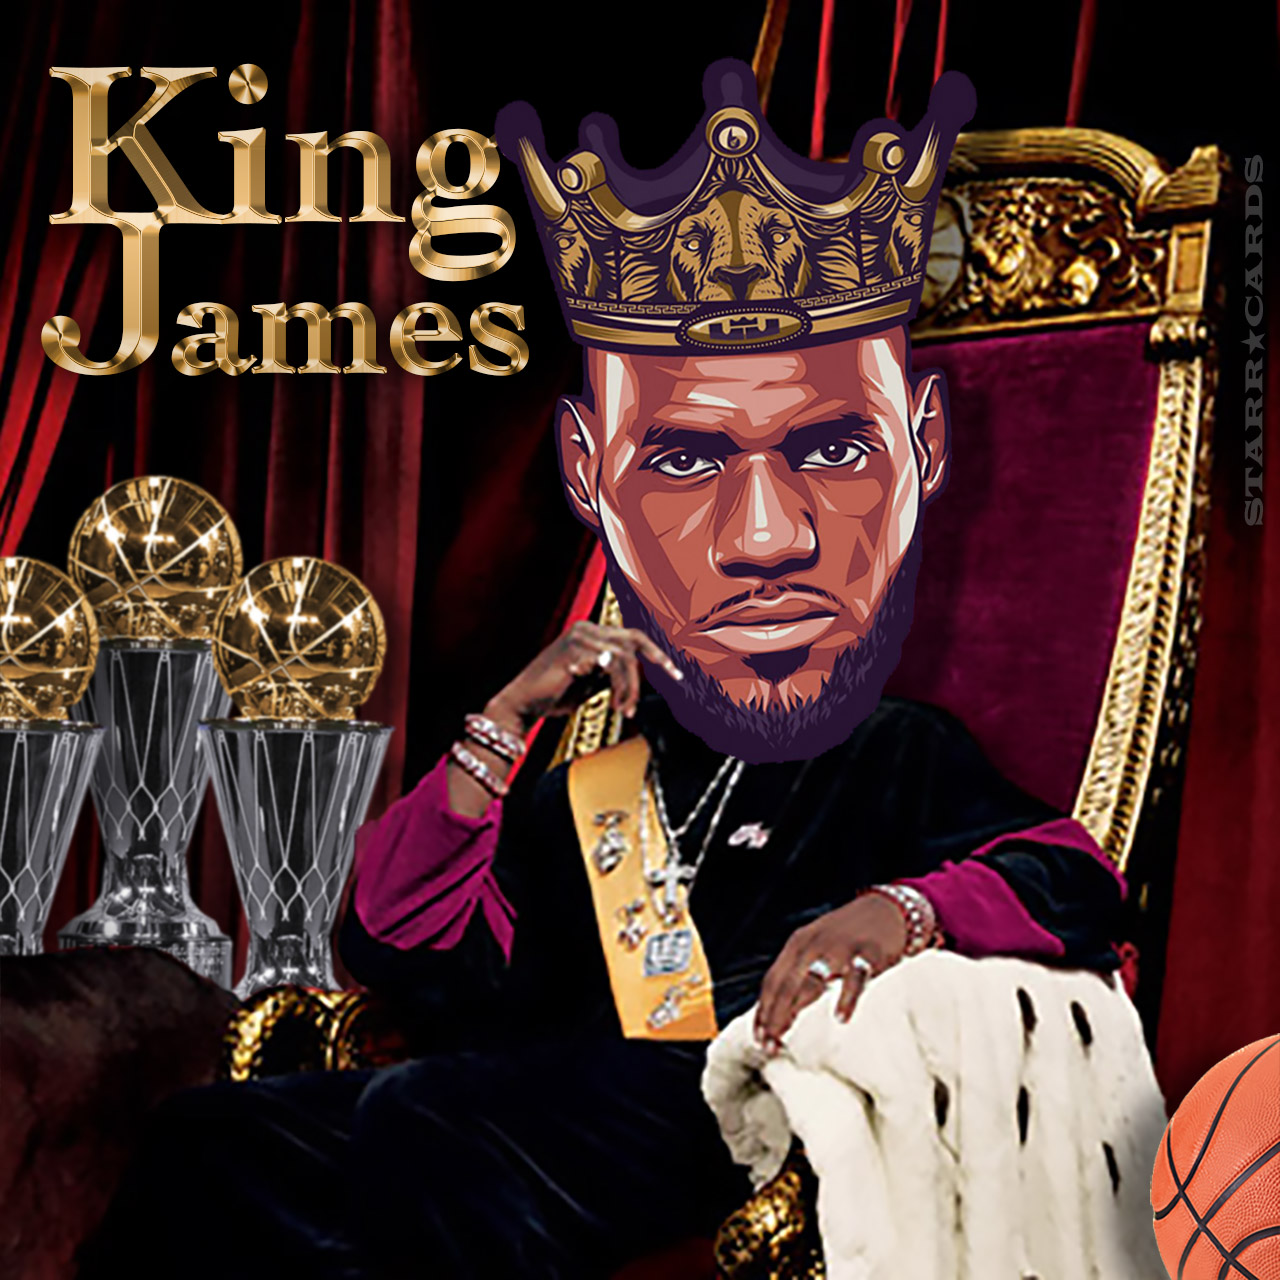 King James gets his due as LeBron crowned by Kyle Kuzma